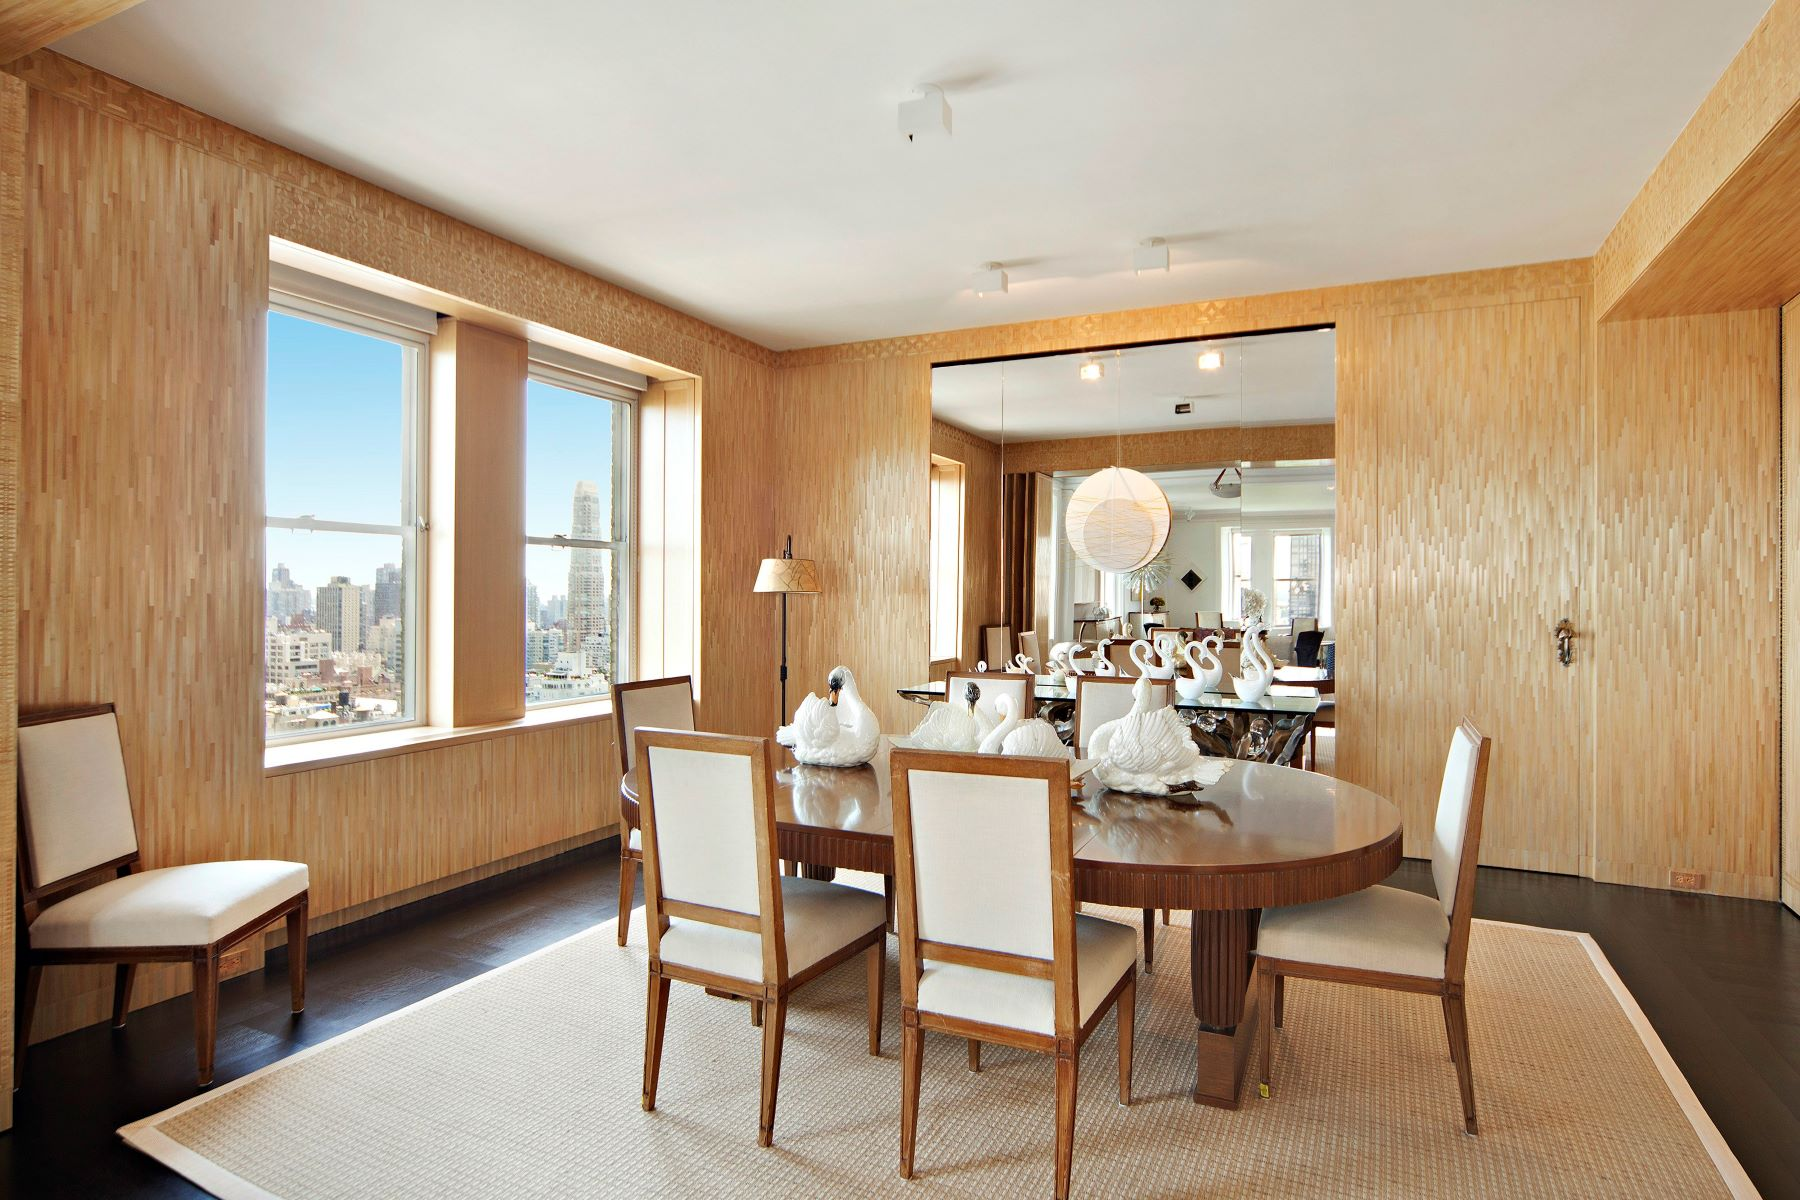 Additional photo for property listing at Pierre Hotel Perfection 795 Fifth Avenue Apt 30/31 New York, New York 10065 United States